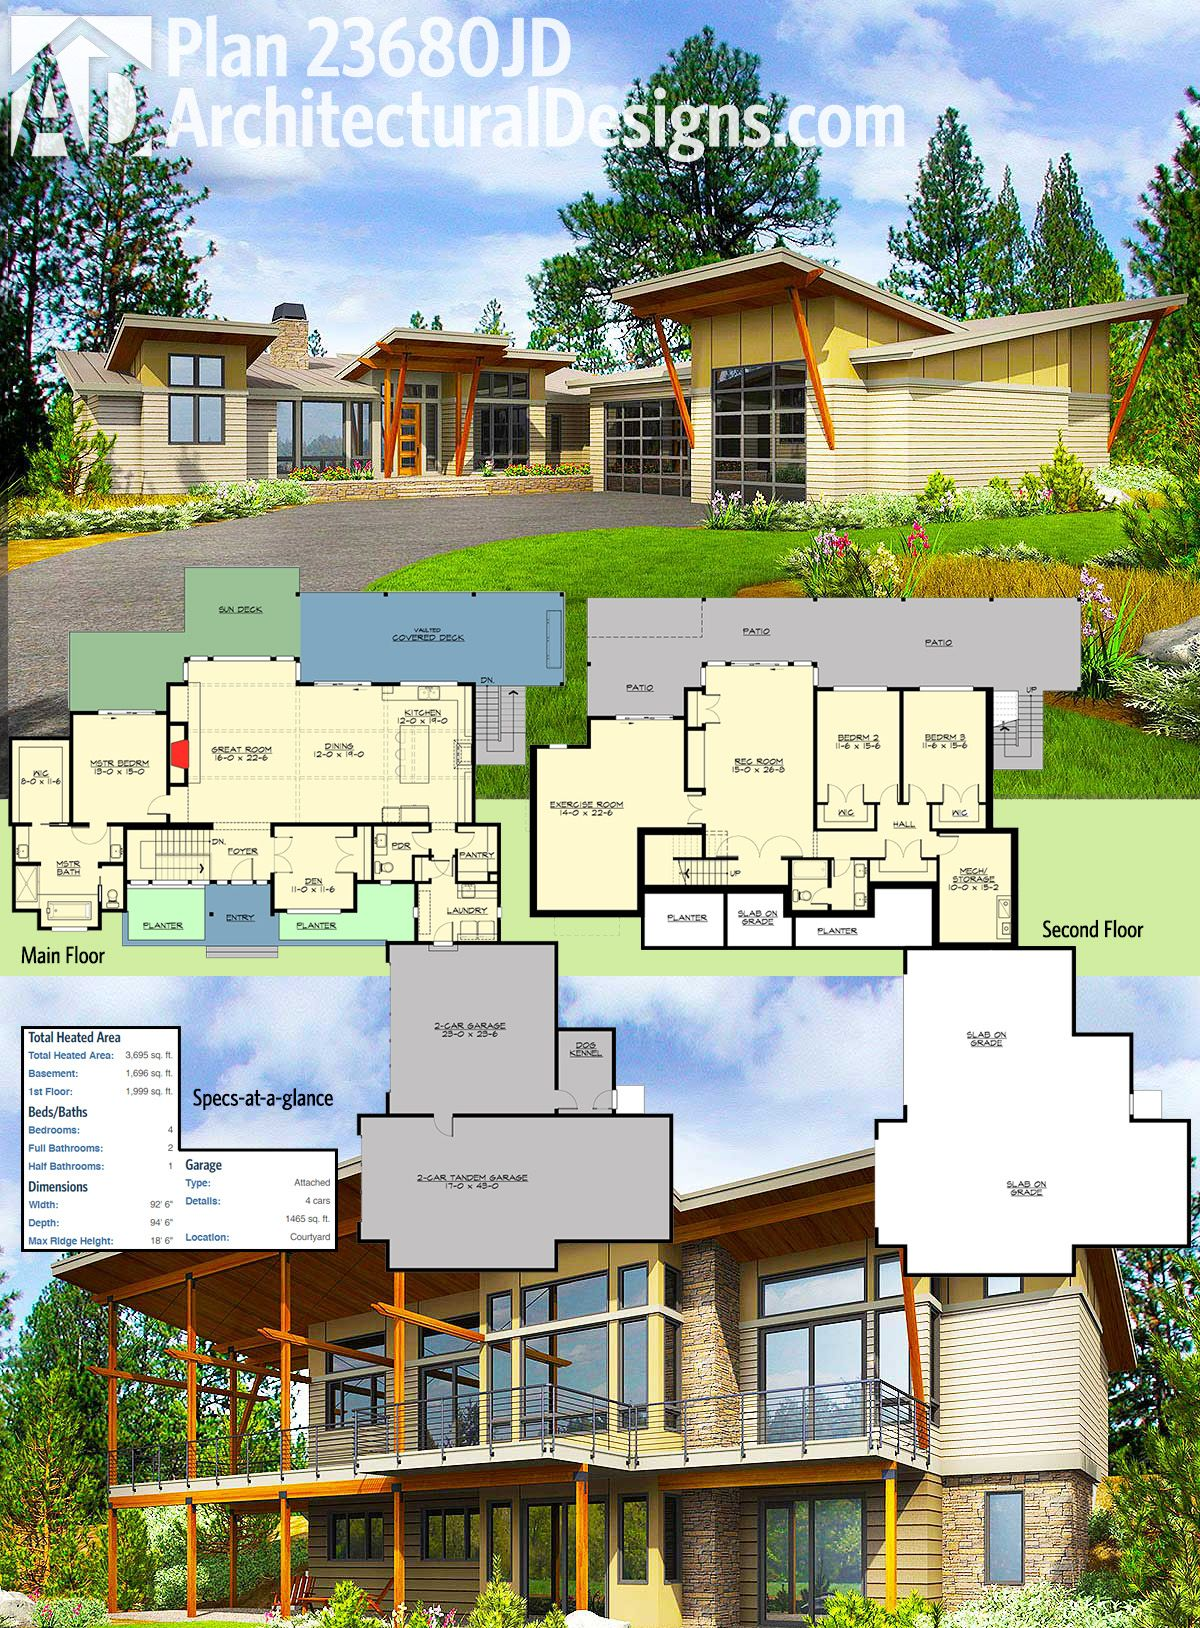 Plan 23680jd Stunning Modern House Plan With Deck And Vaulted Porch In Back Building A Deck Modern House Plan Modern House Plans